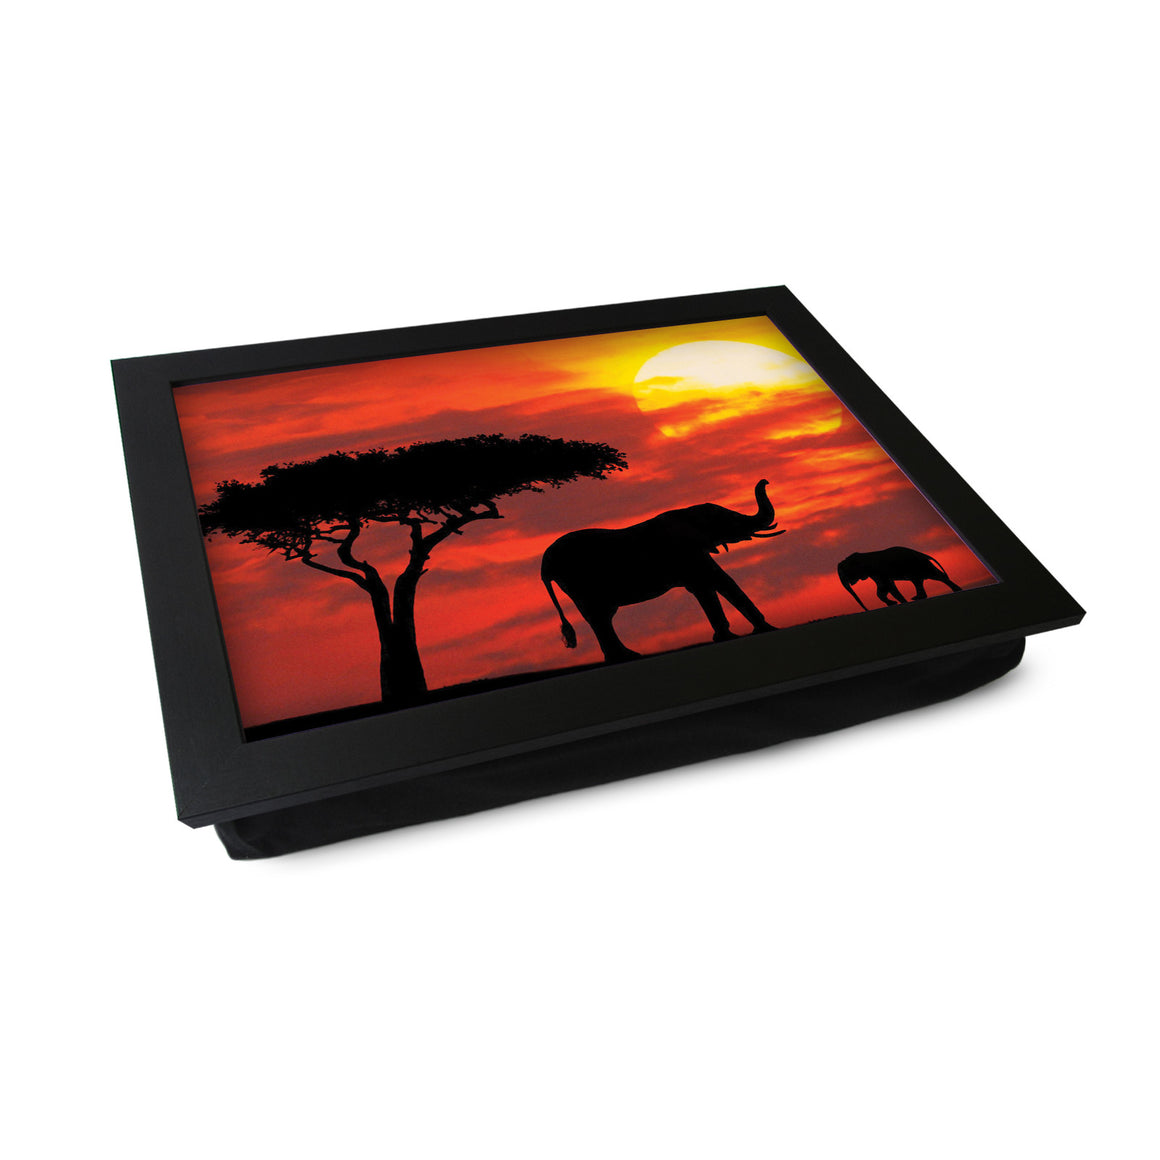 African Sunset Elephant Silhouette Lap Tray - L0357